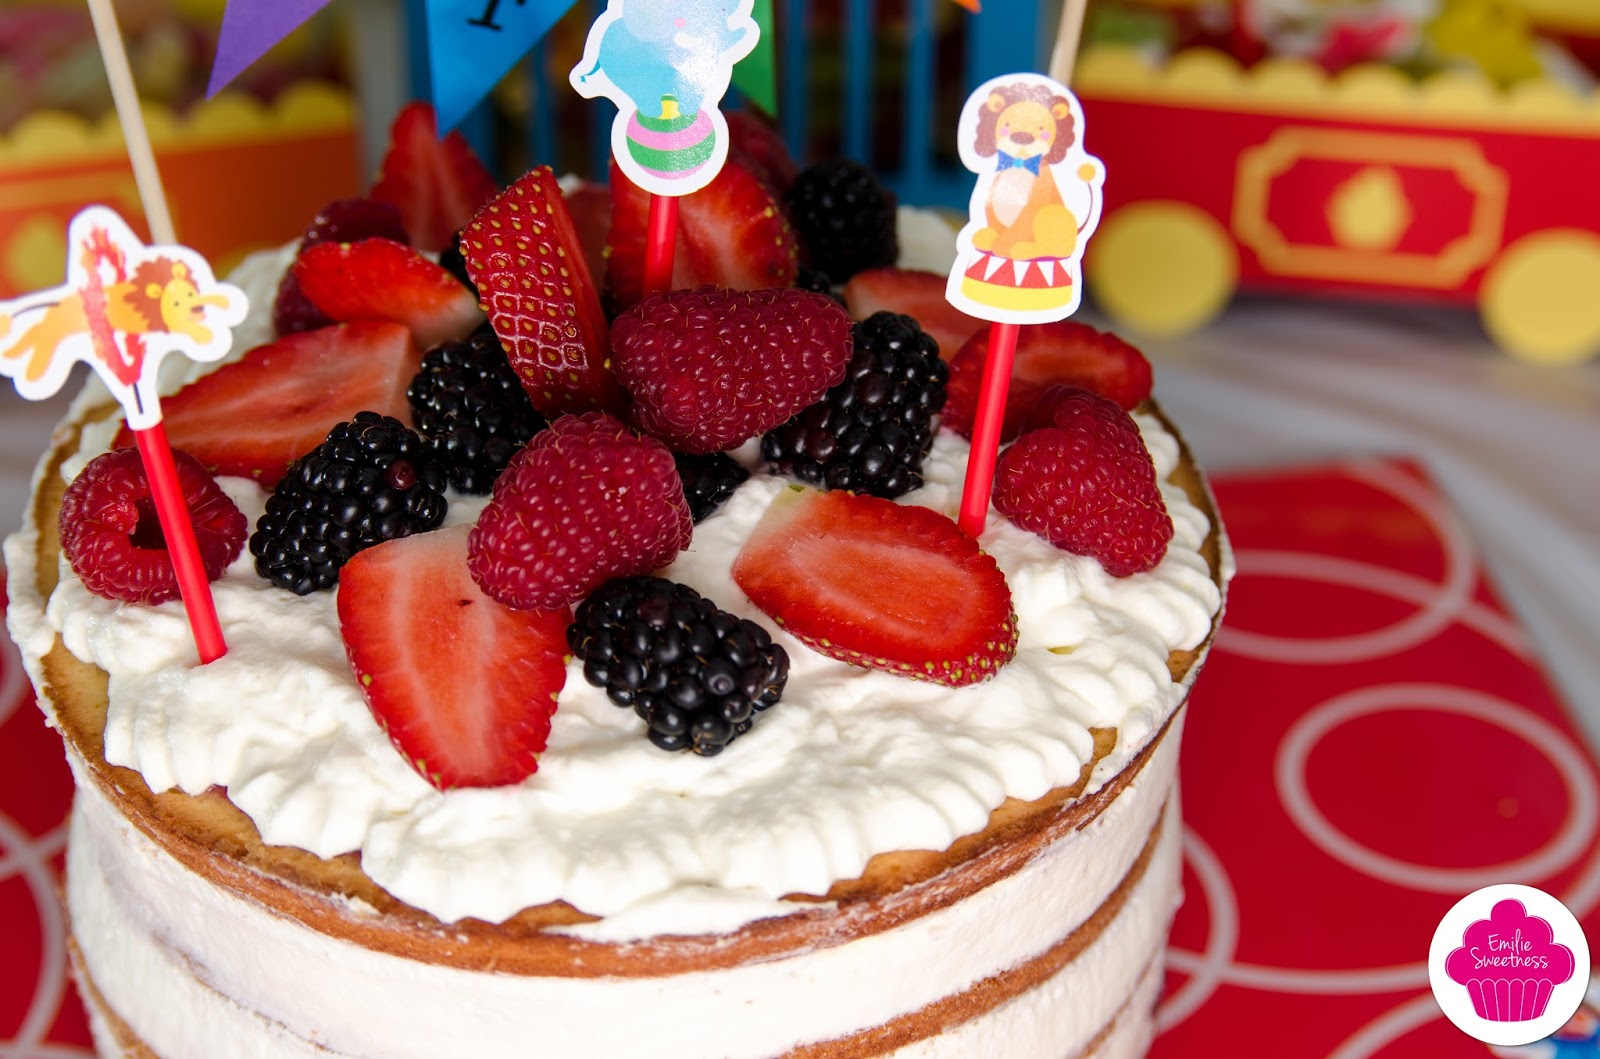 Creme Chantilly Decoration Gateau Emilie Sweetness Naked Cake Aux Fruits Rouges Et